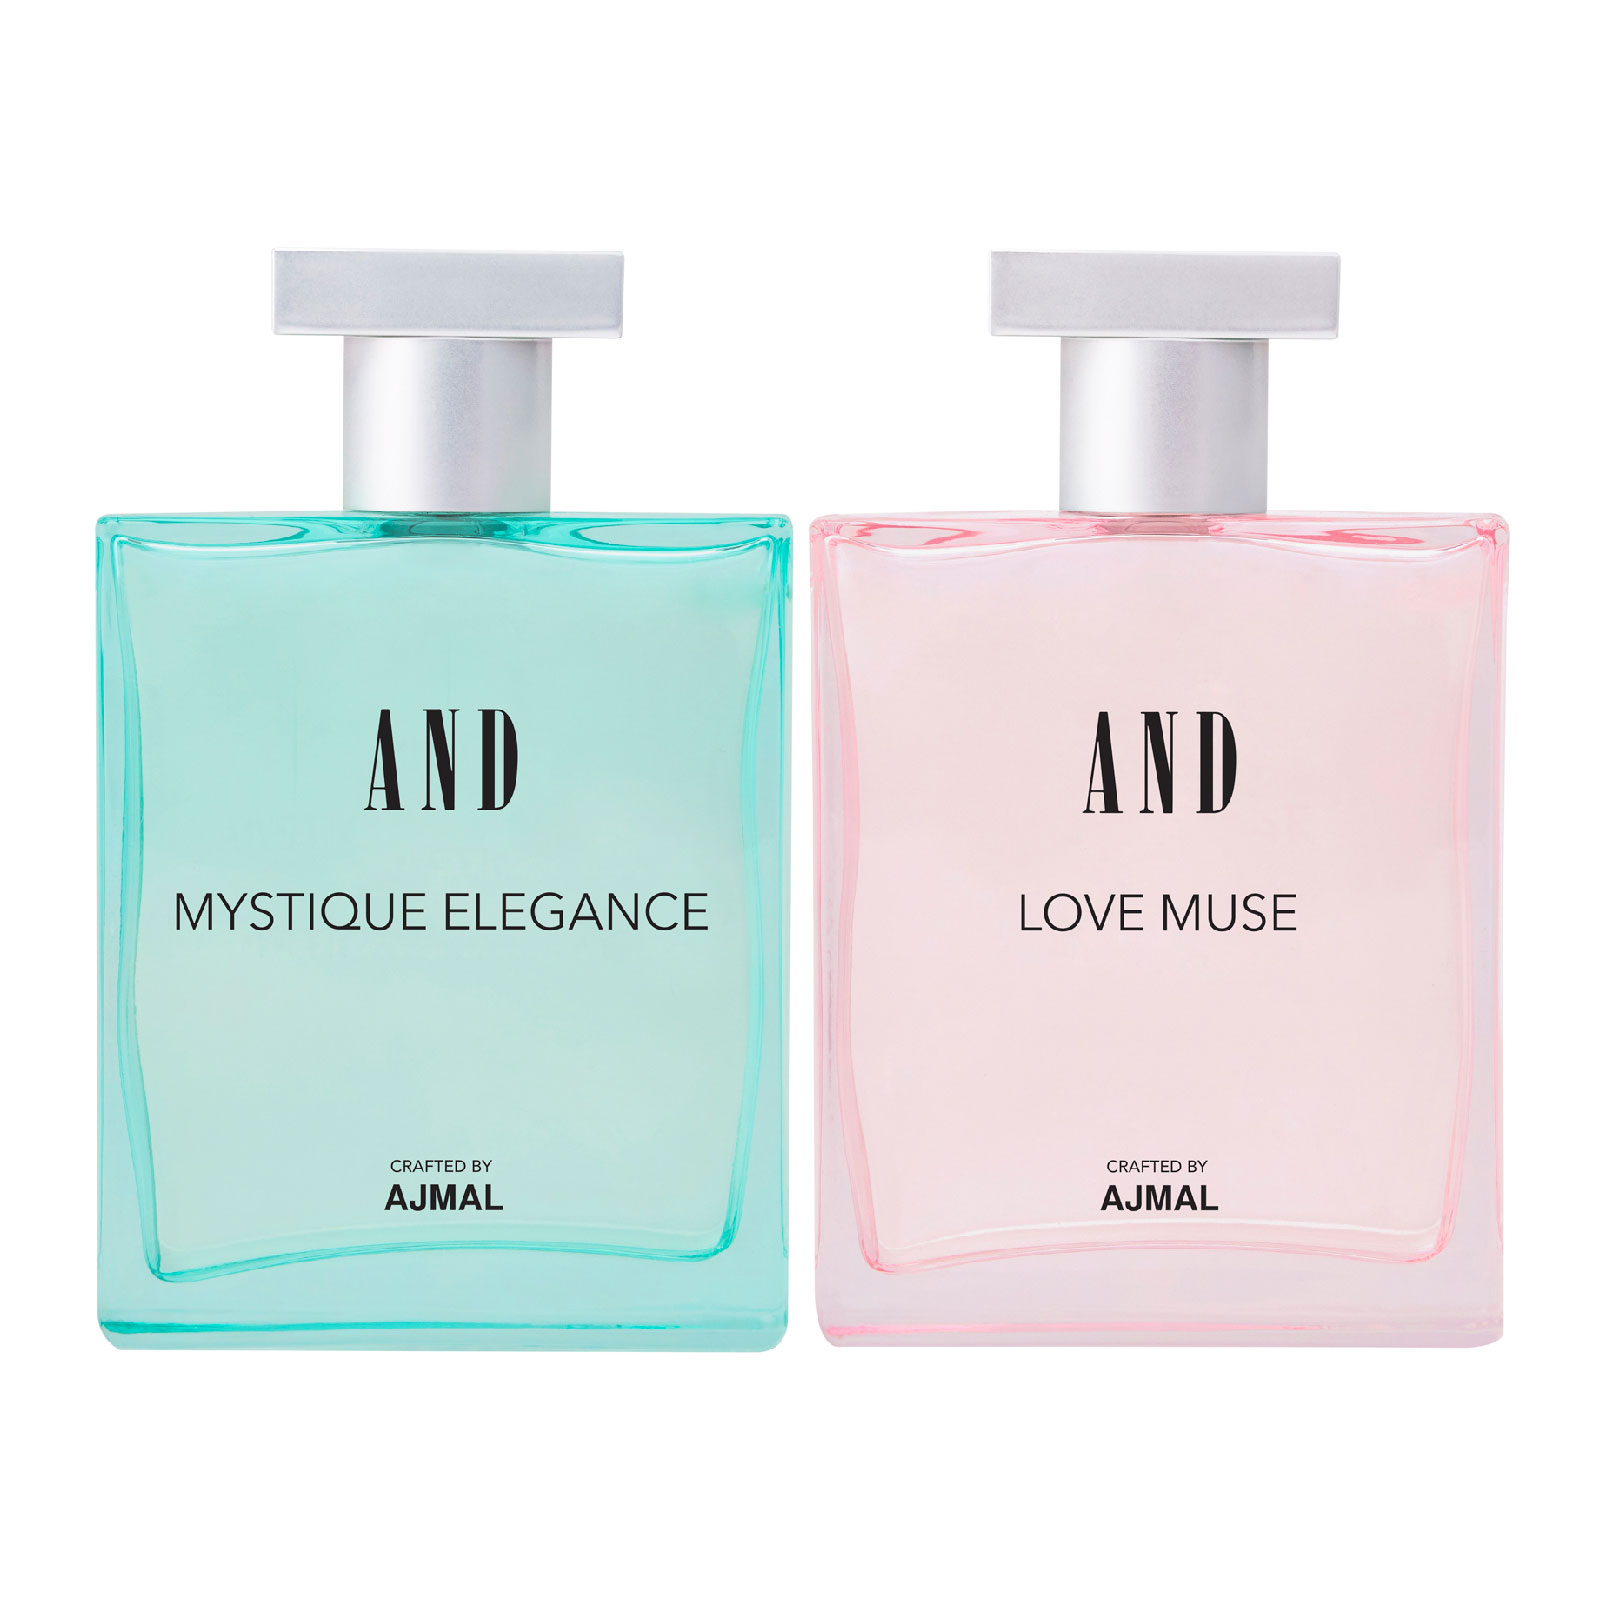 AND Crafted By Ajmal | AND Mystique Elegance & Love Muse Pack of 2 Eau De Parfum 50ML each for Women Crafted by Ajmal + 2 Parfum Testers